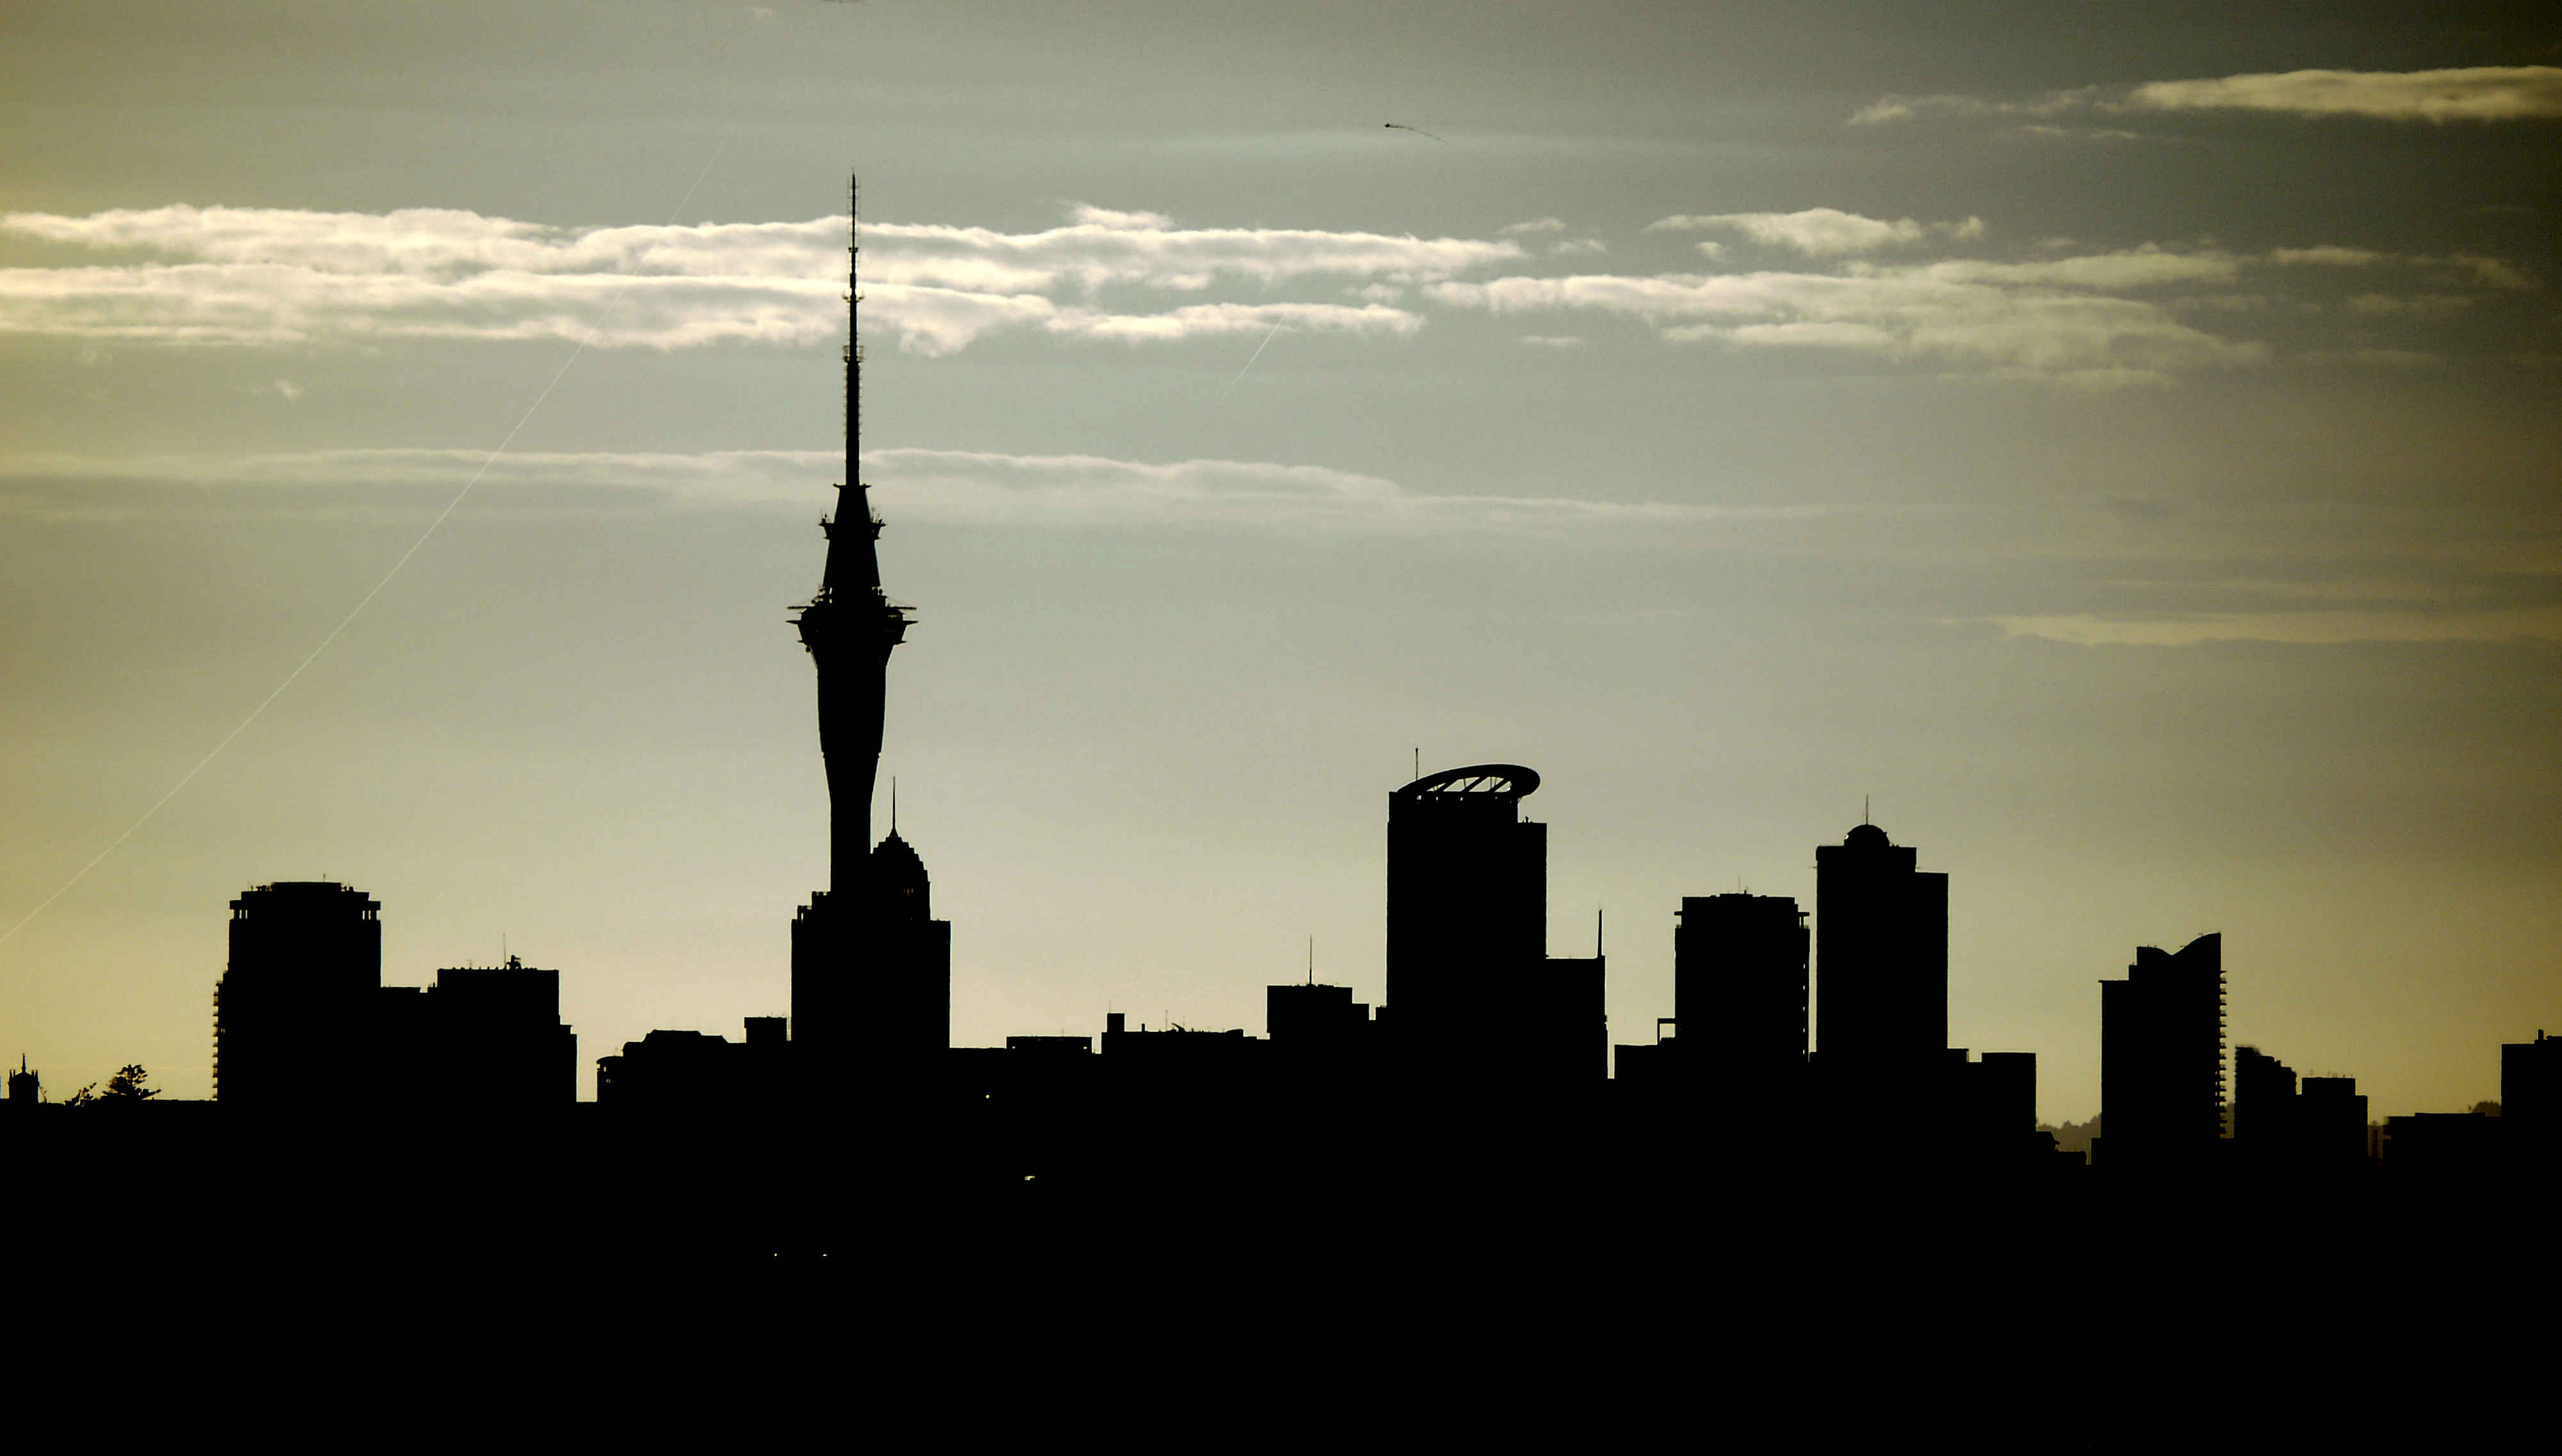 Auckland City Silhouette | Flickr - Photo Sharing!